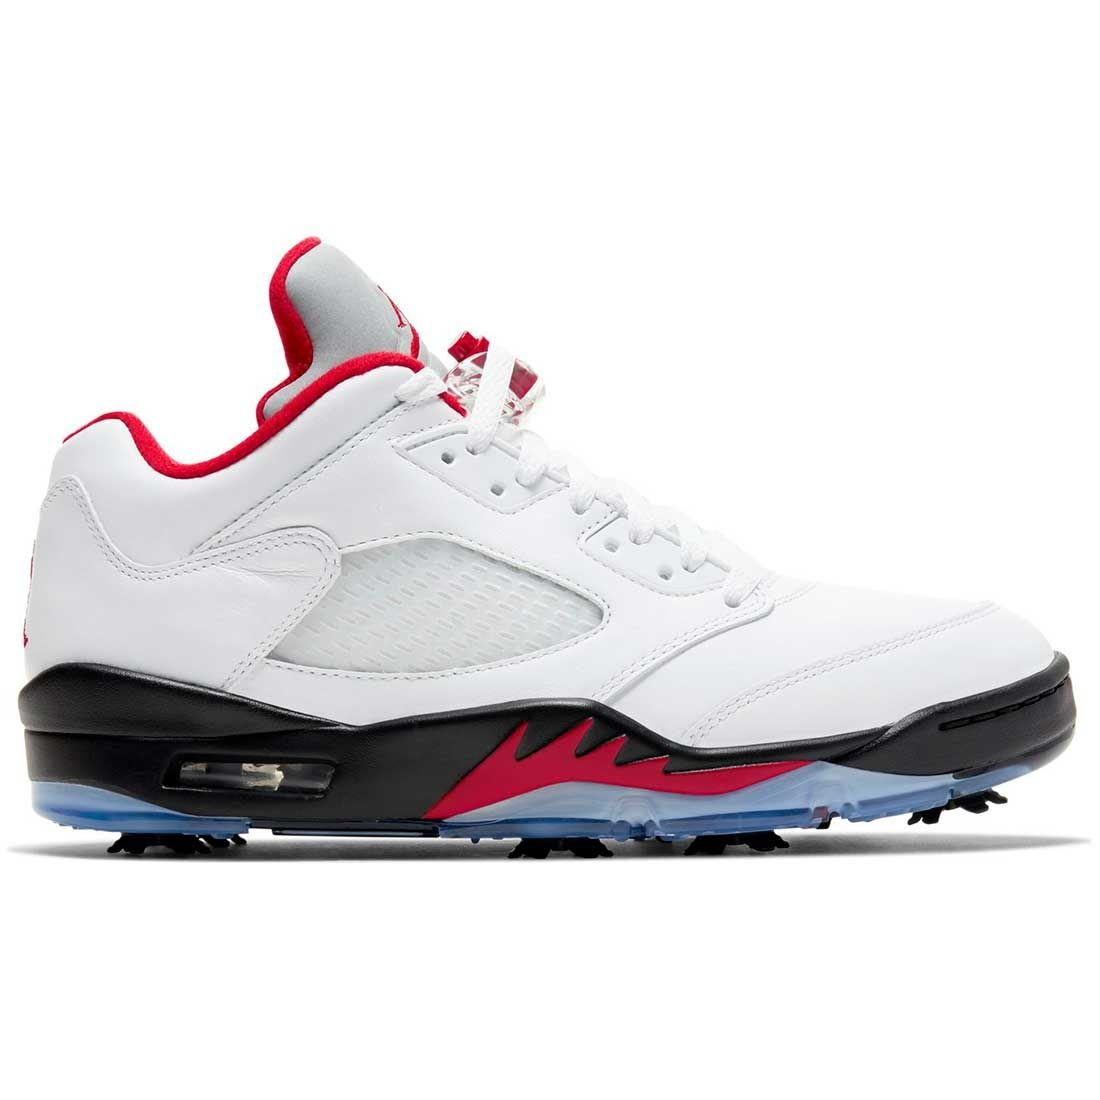 Compositor arpón Increíble  Buy Nike Air Jordan V Low Golf Shoes White/Fire Red | Golf Discount